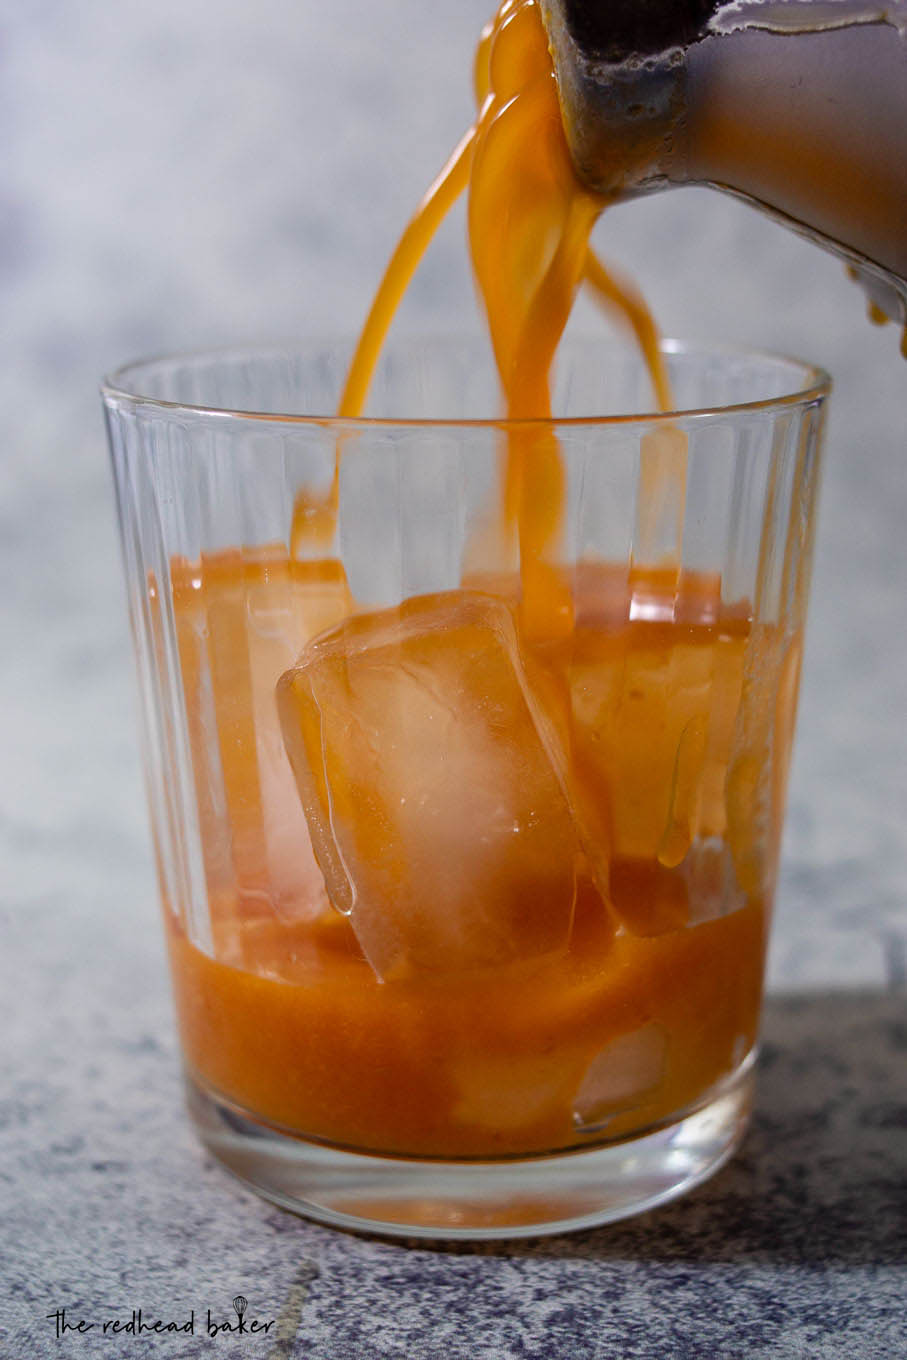 Pumpkin old-fashioned being strained into a glass filled with ice.